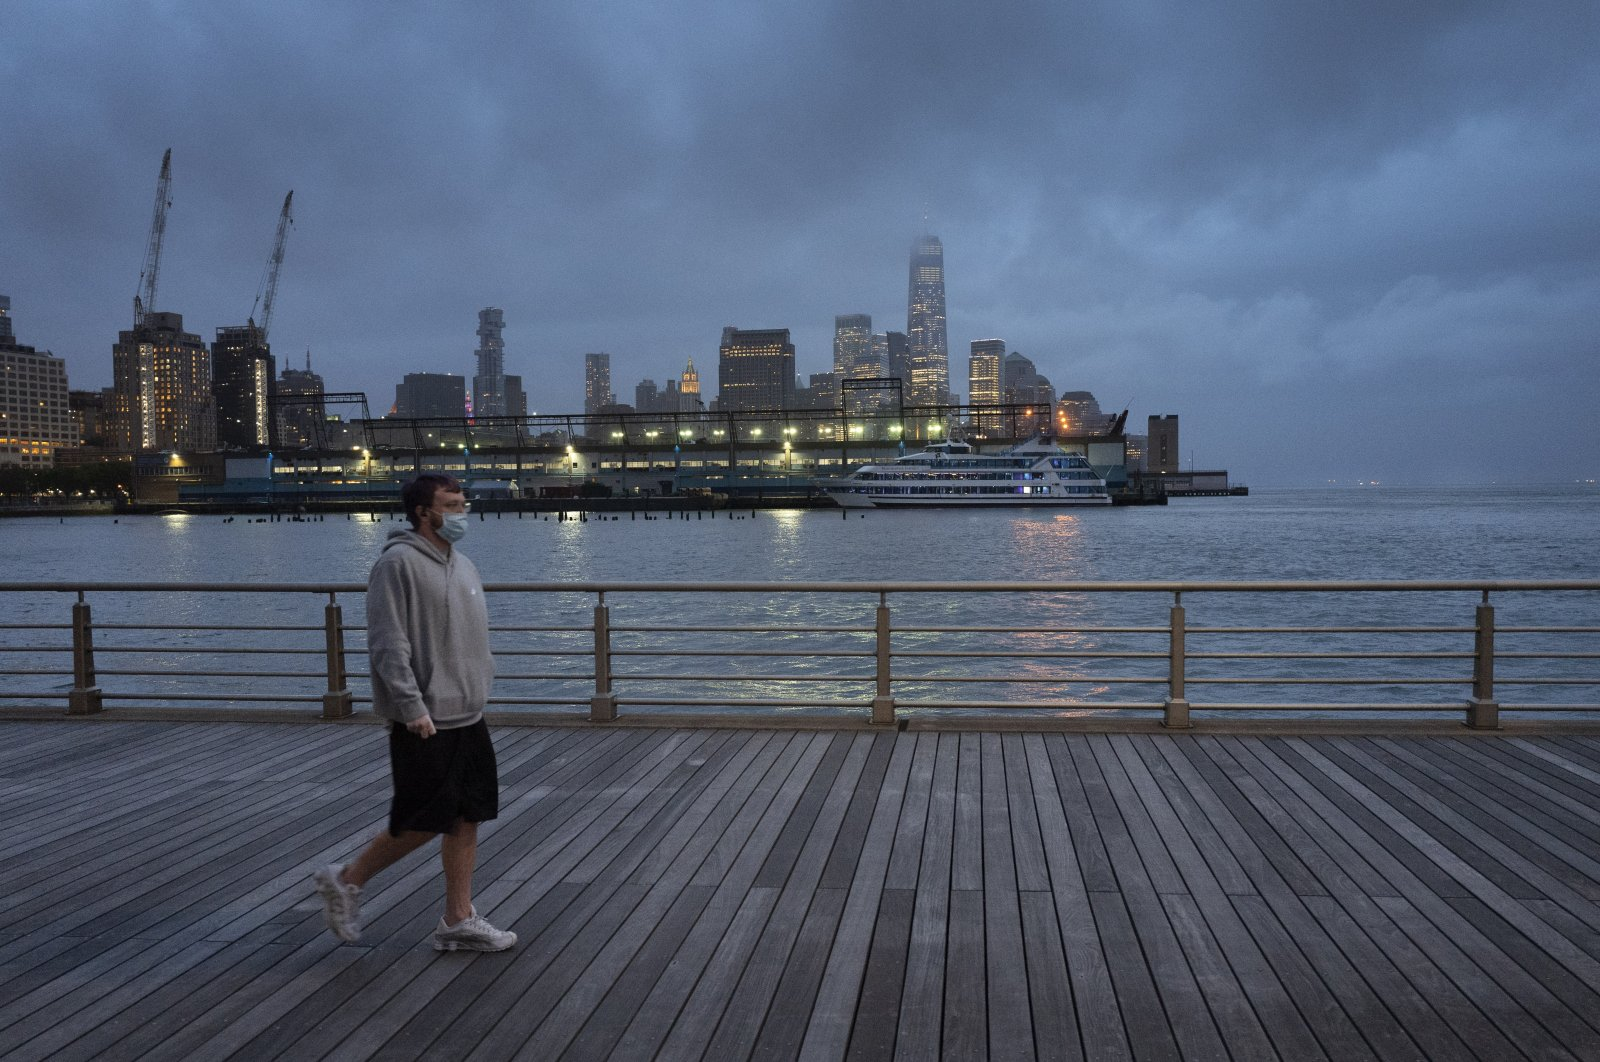 In this April 30, 2020, file photo, a man wears a face mask as he walks on Pier 45 in Hudson River Park in New York. (AP Photo)